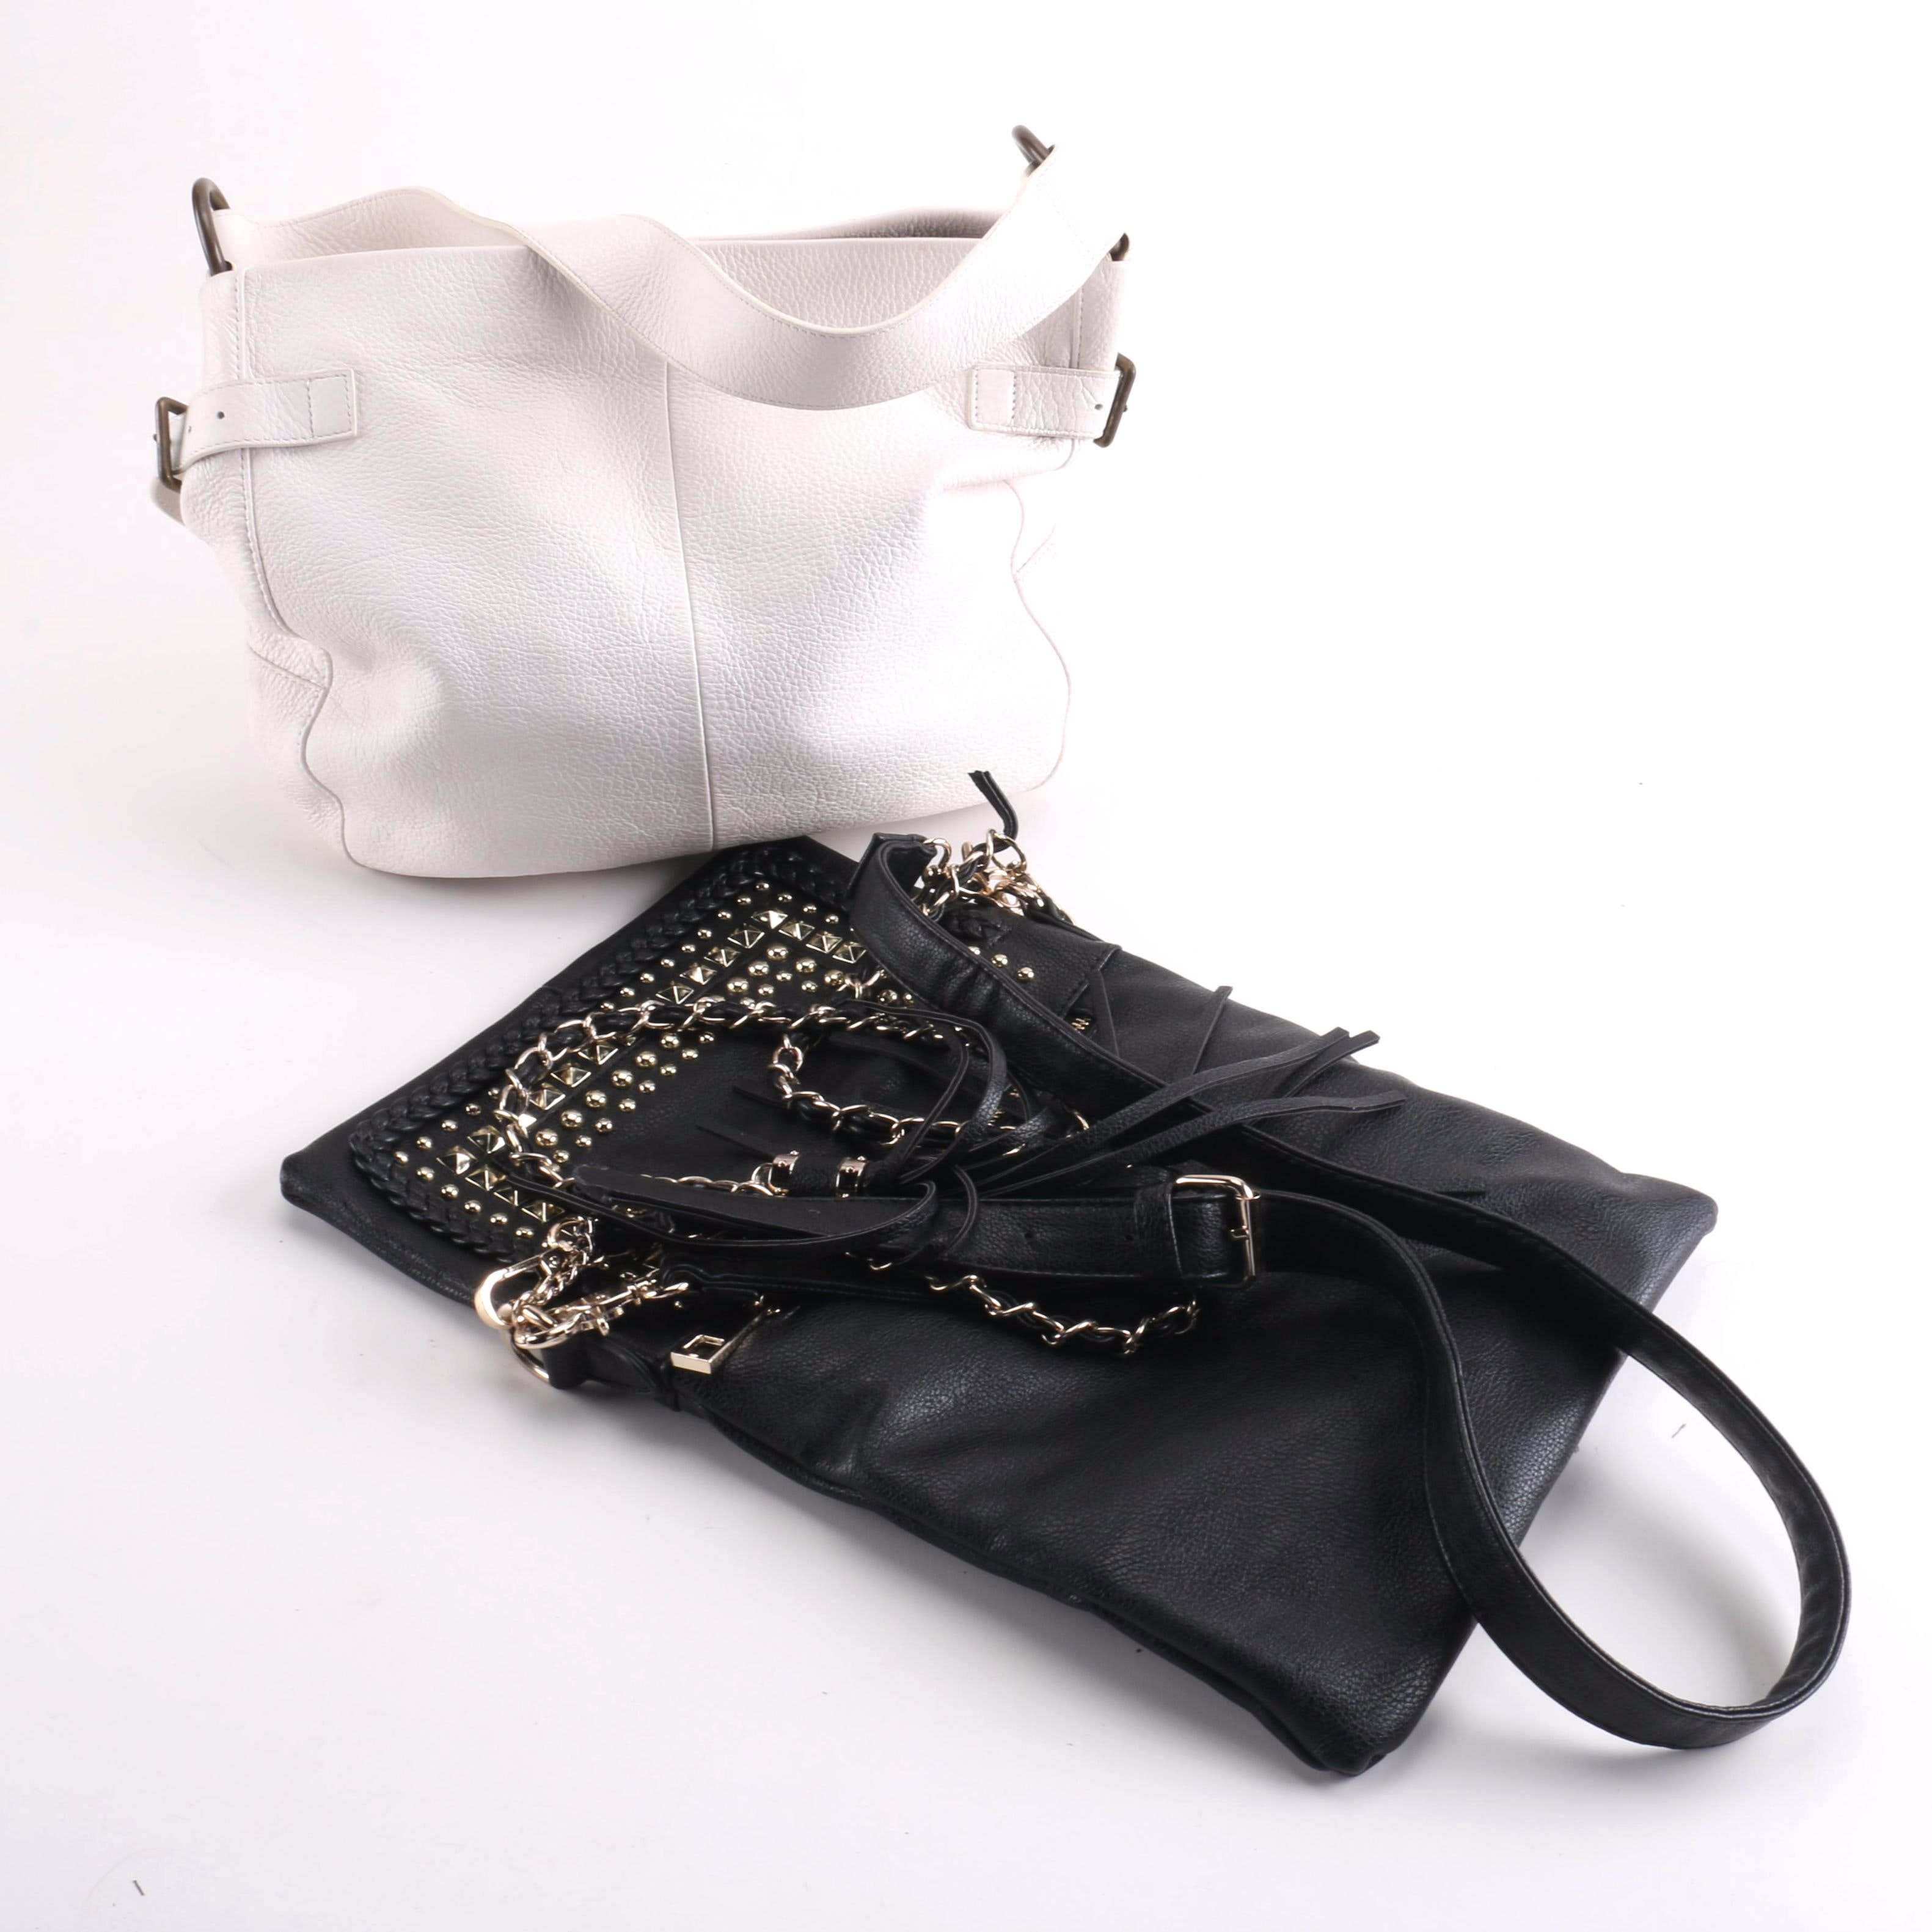 Leather Handbags Including Gap and Lionel